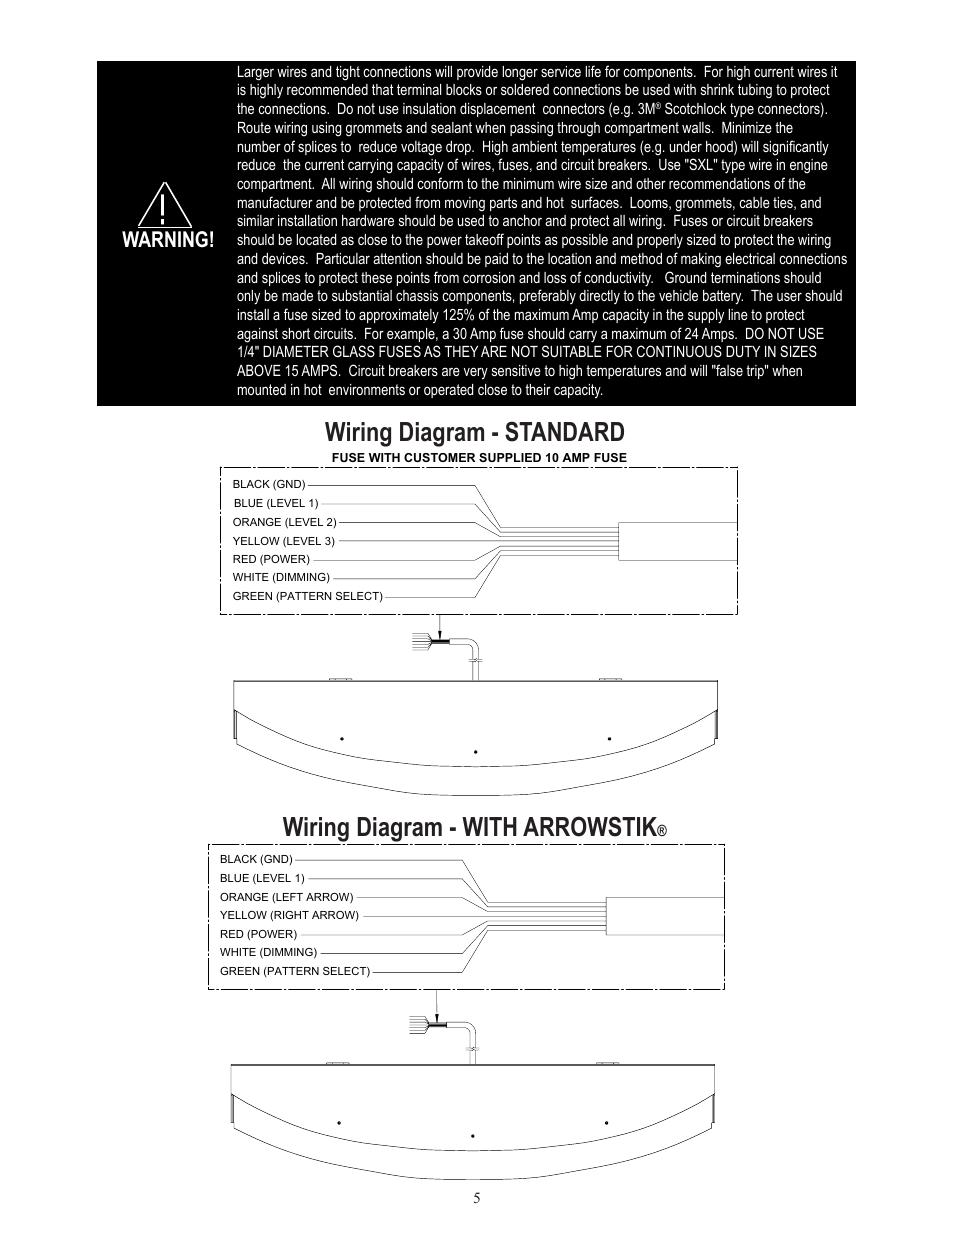 code 3 wingman with tricore_torus for charger page5 wiring diagram standard, wiring diagram with arrowstik code 3 arrowstick wiring diagram at virtualis.co